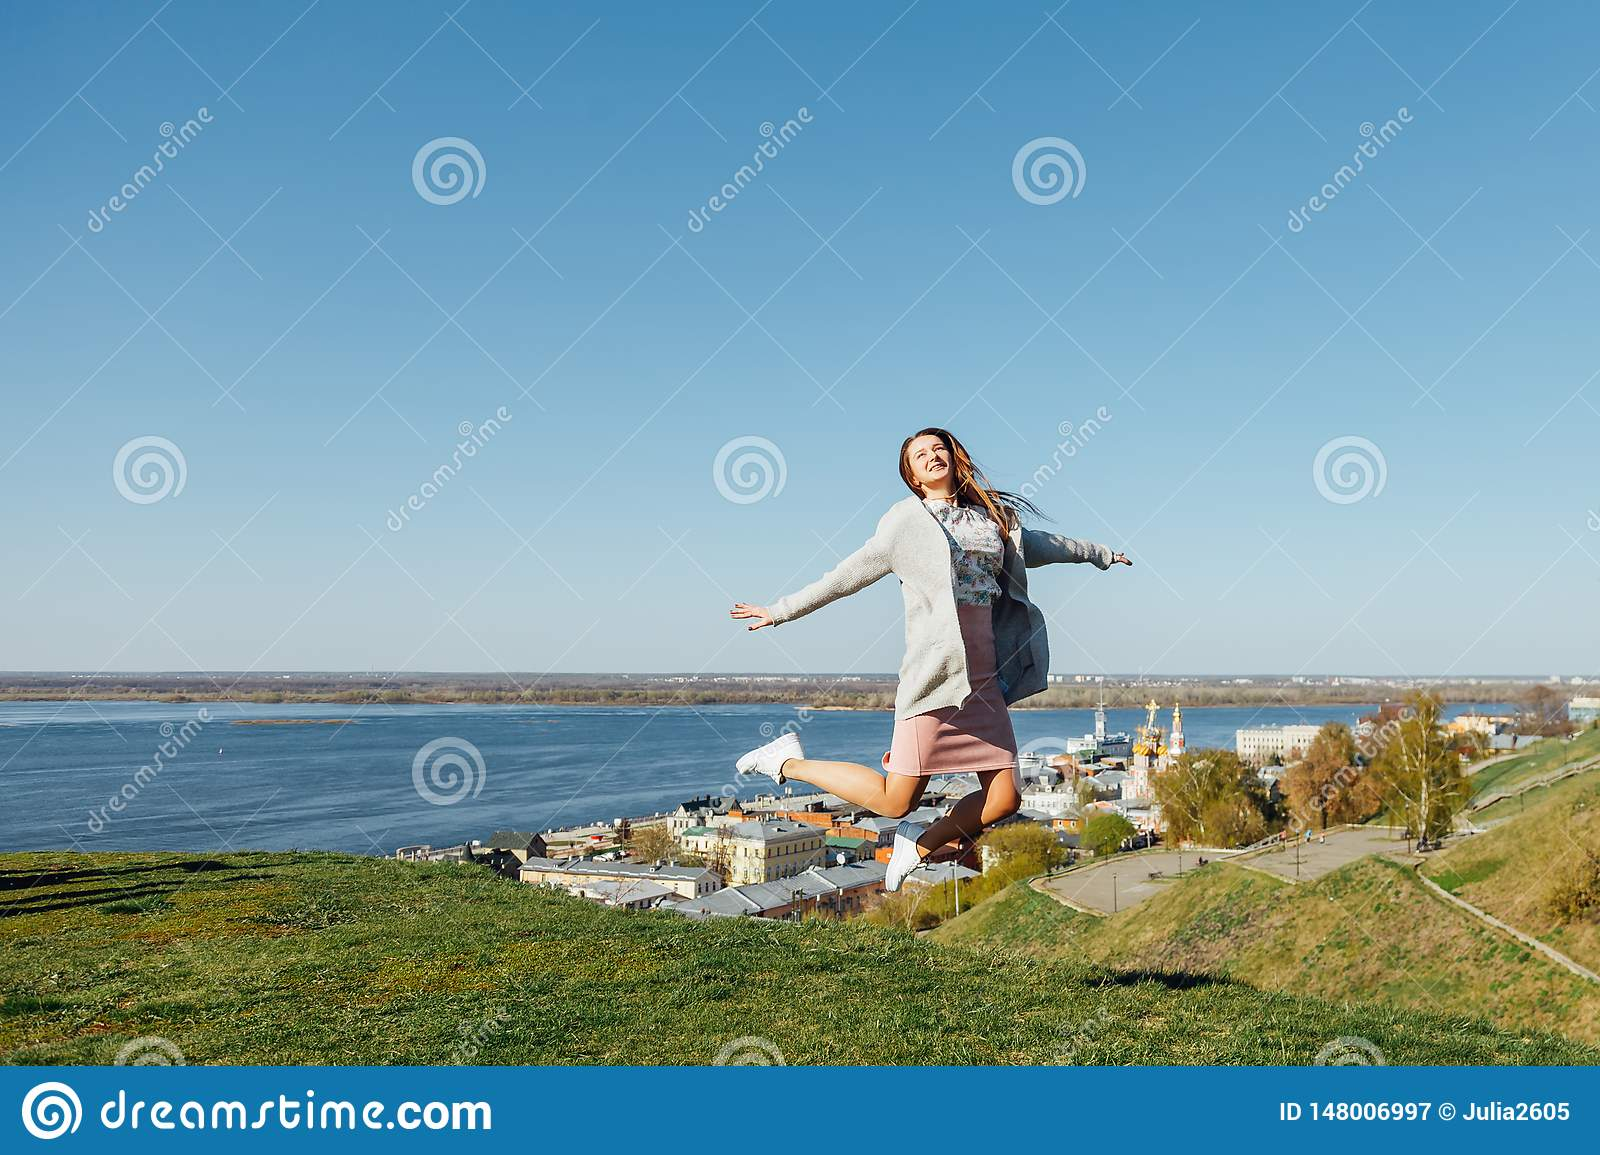 Happy woman jumping in the air